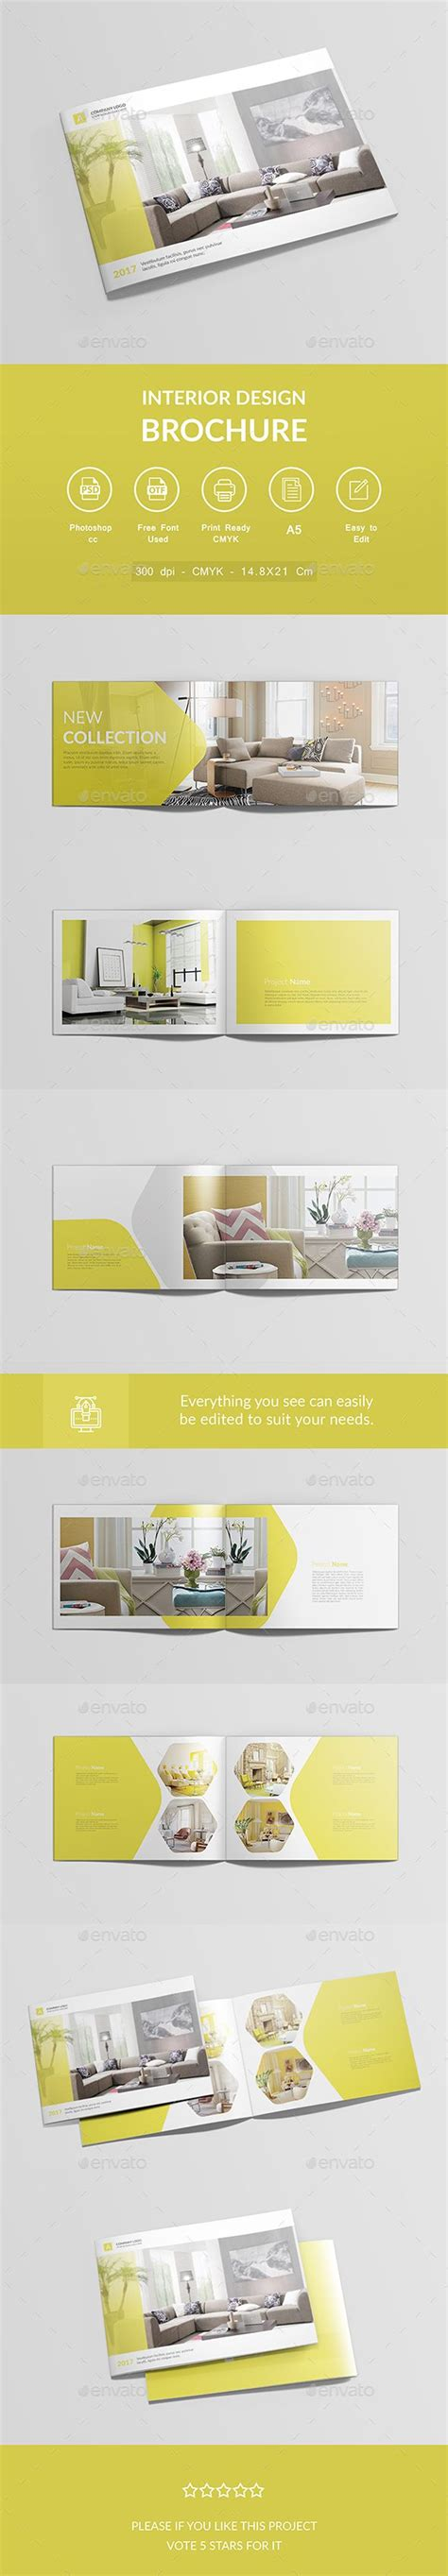 interior design brochure psd template brochure